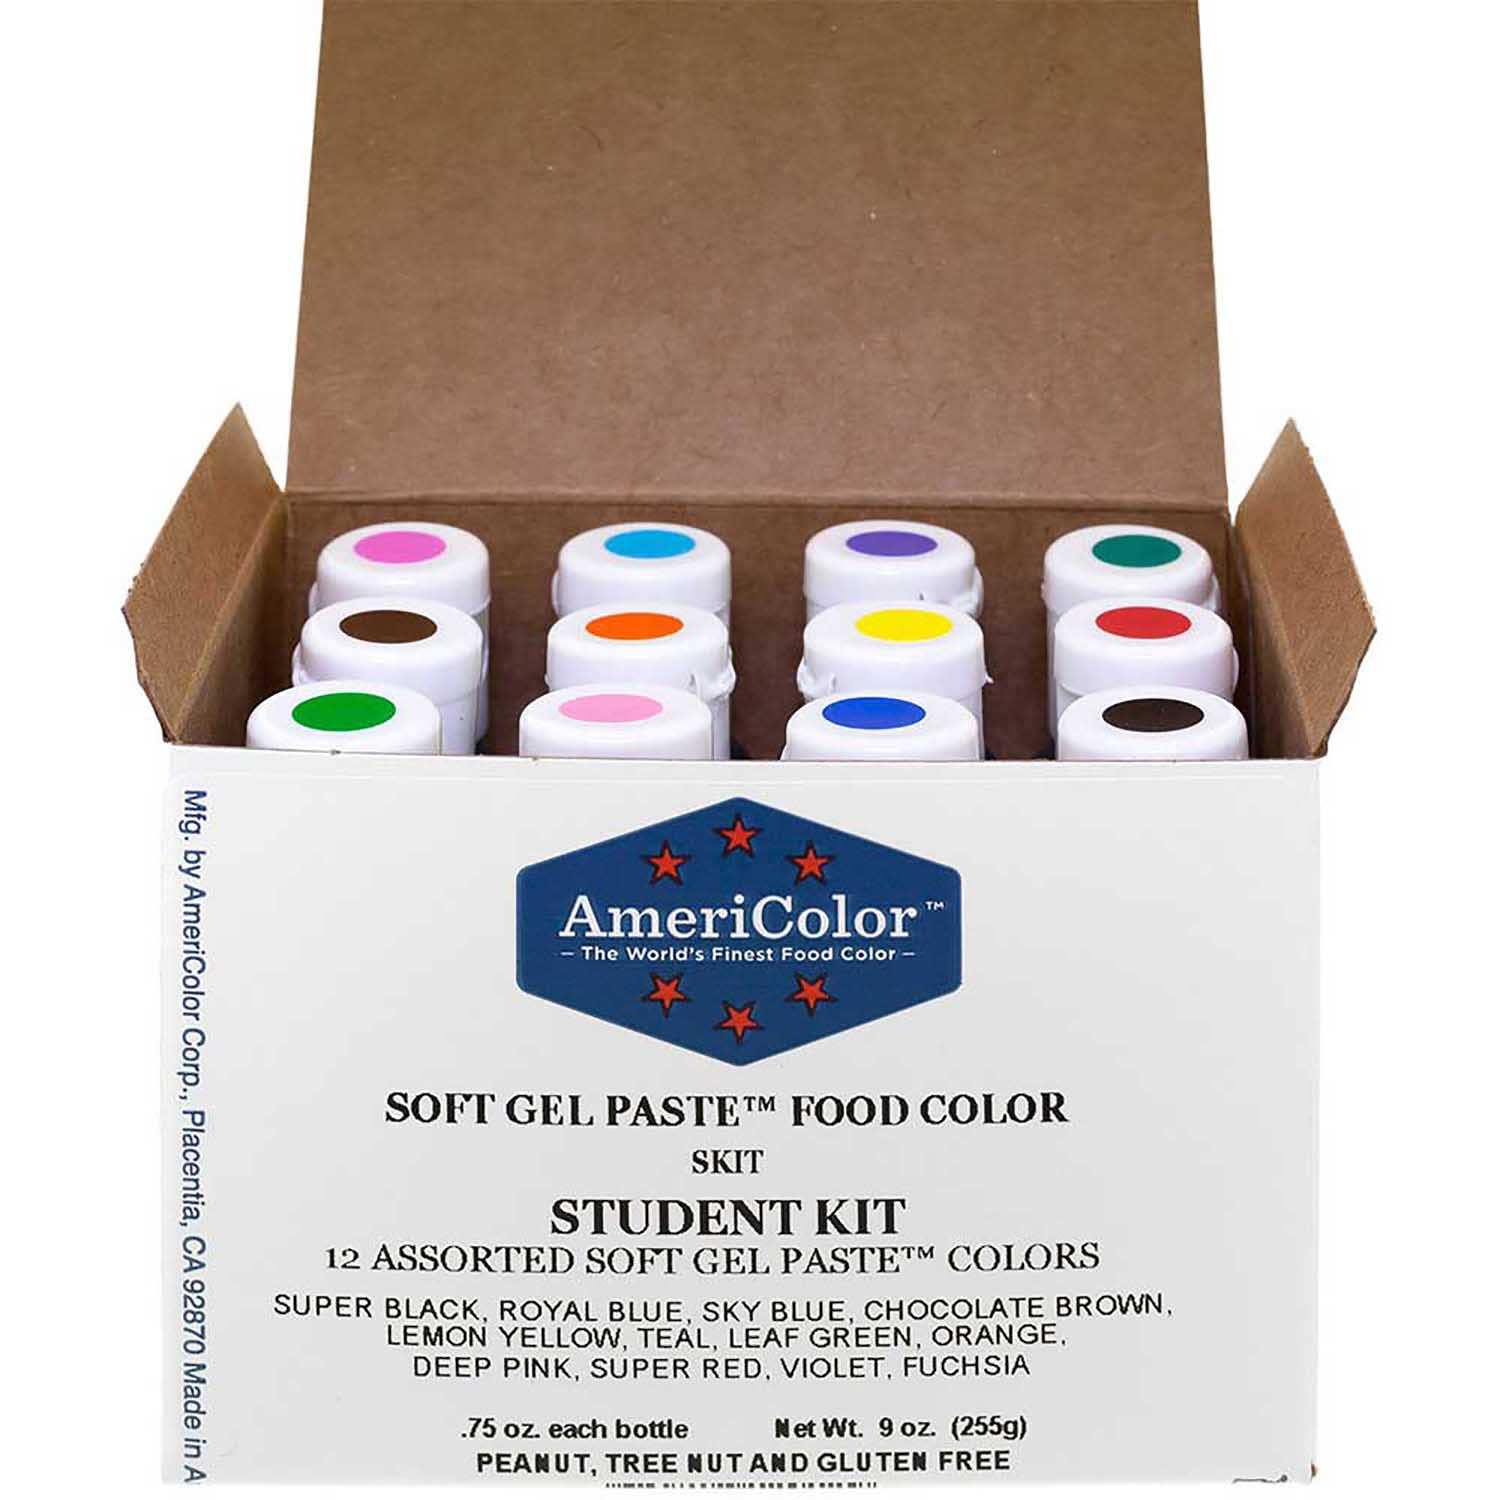 Student Soft Gel Paste™ Food Color Kit